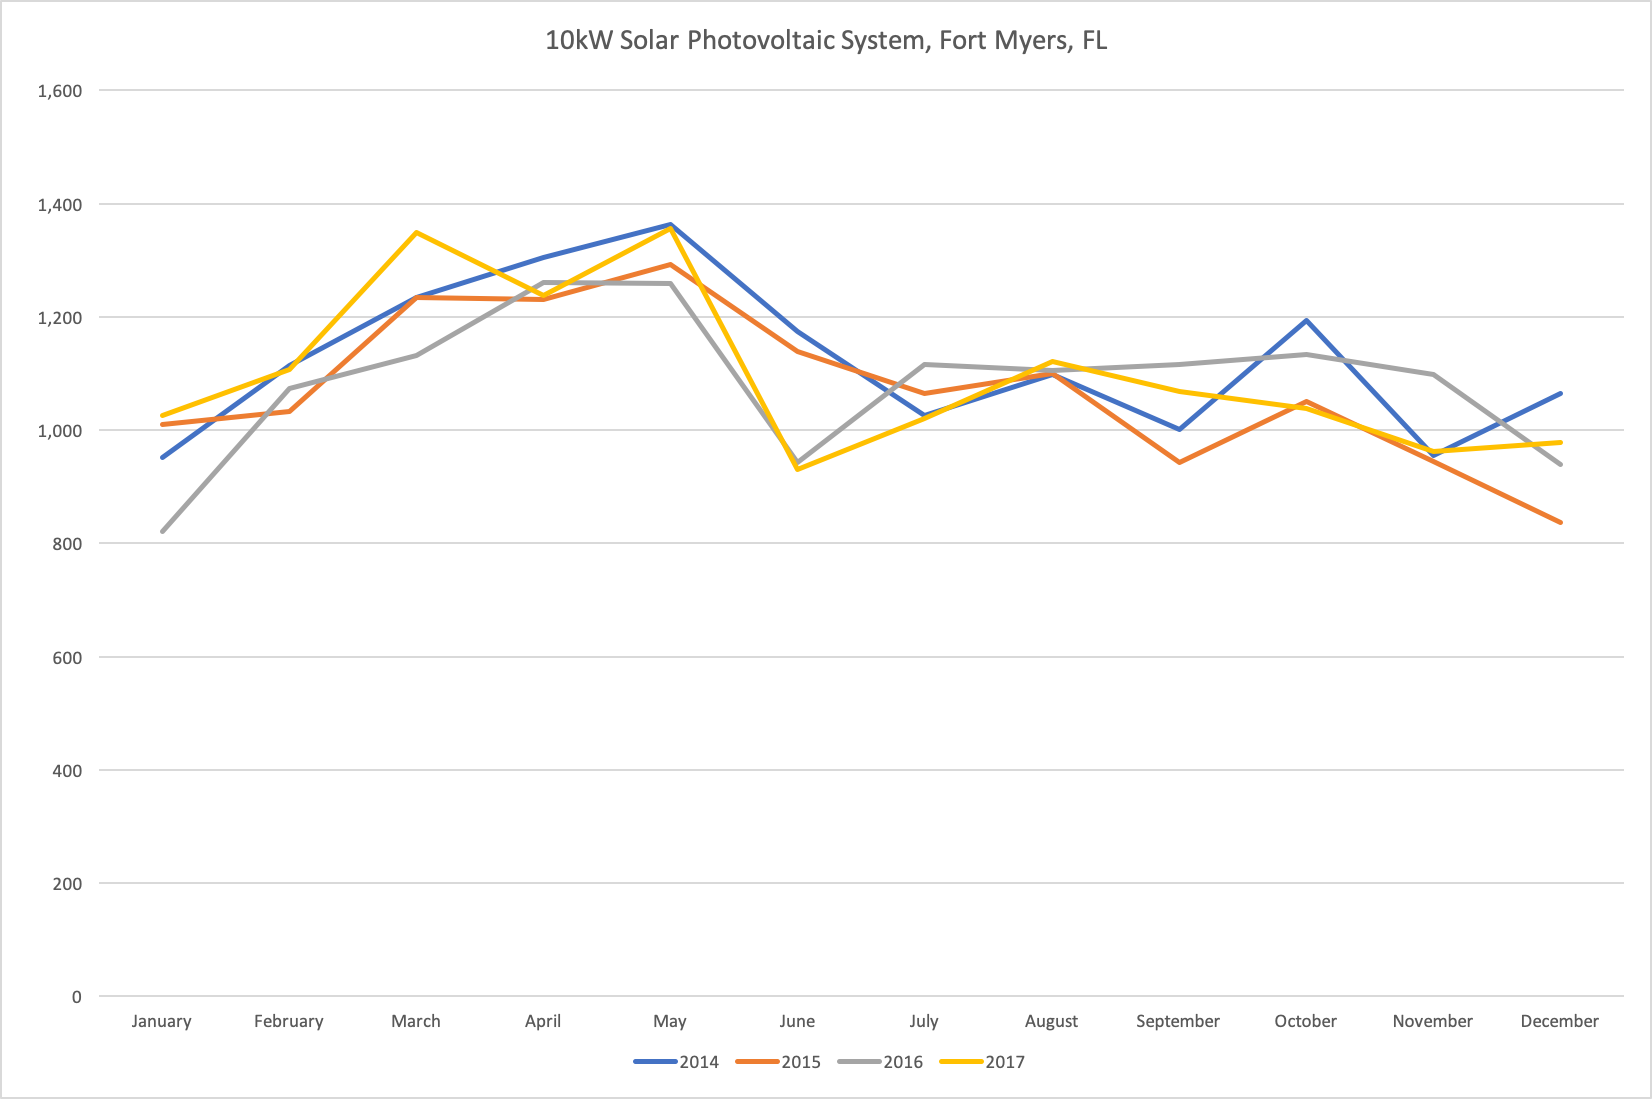 Photovoltaic System Variability By Year